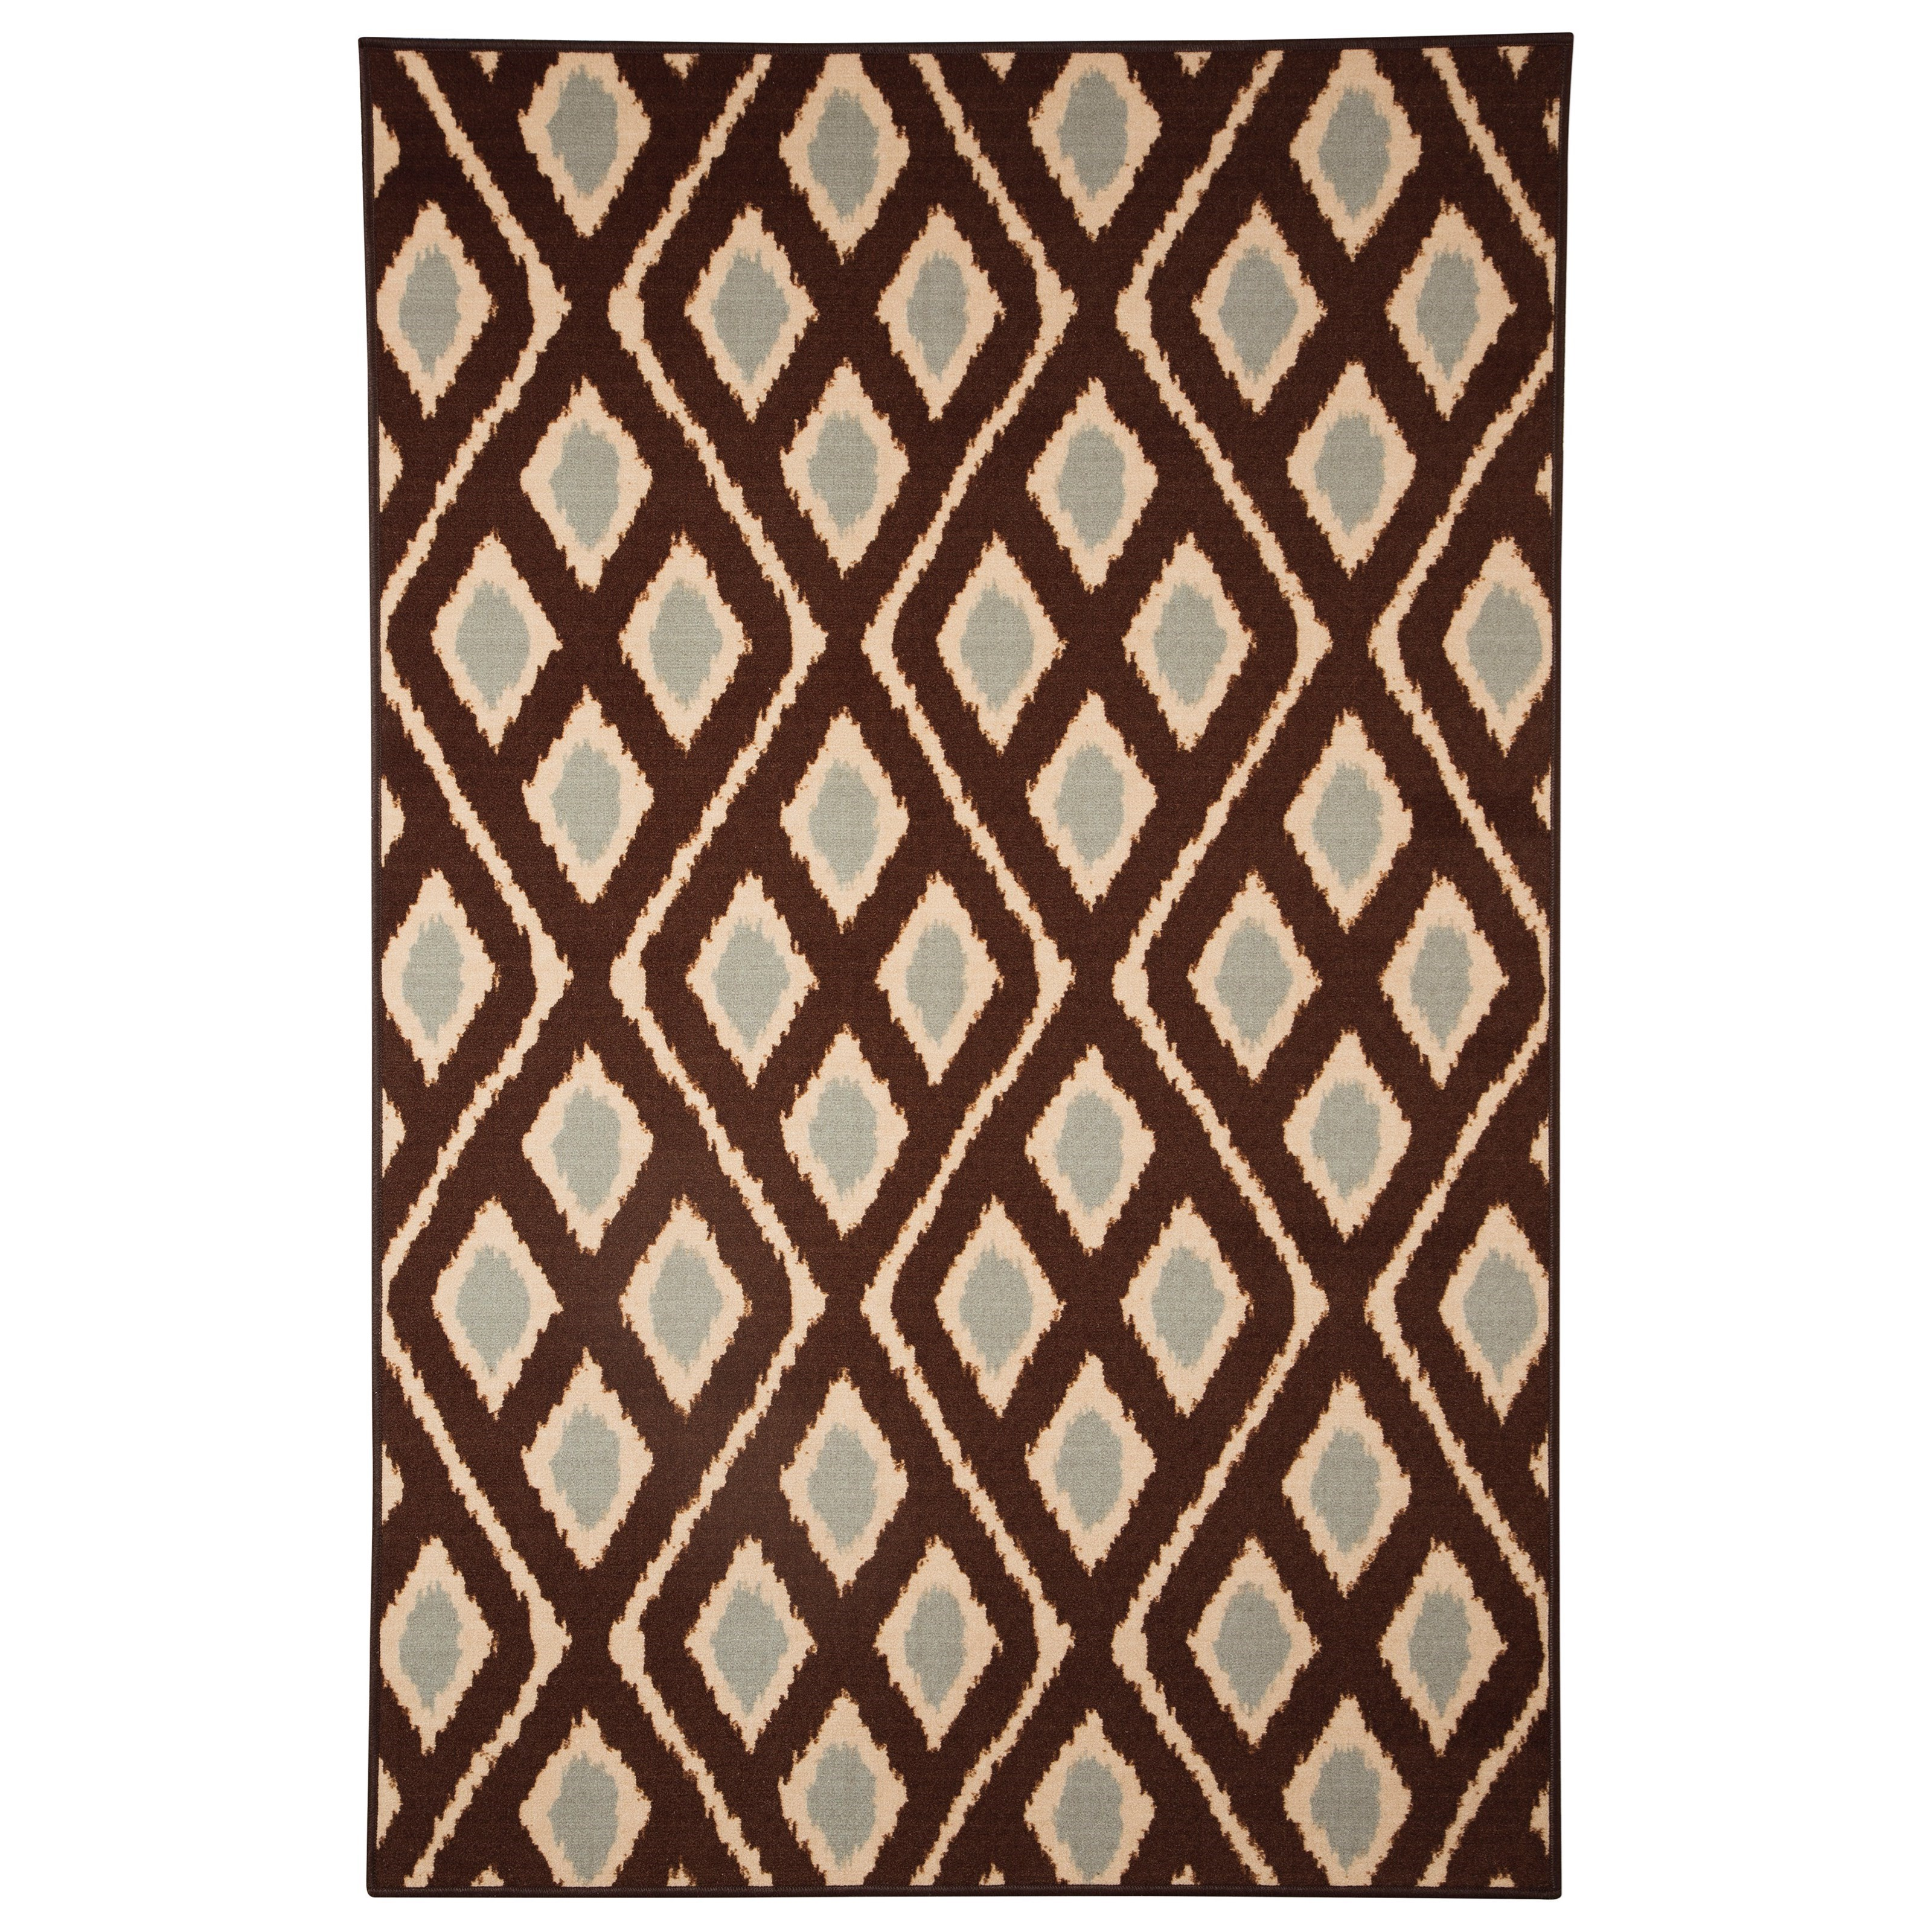 Signature Design by Ashley Transitional Area Rugs Abhay Blue/Beige Medium Rug - Item Number: R330002